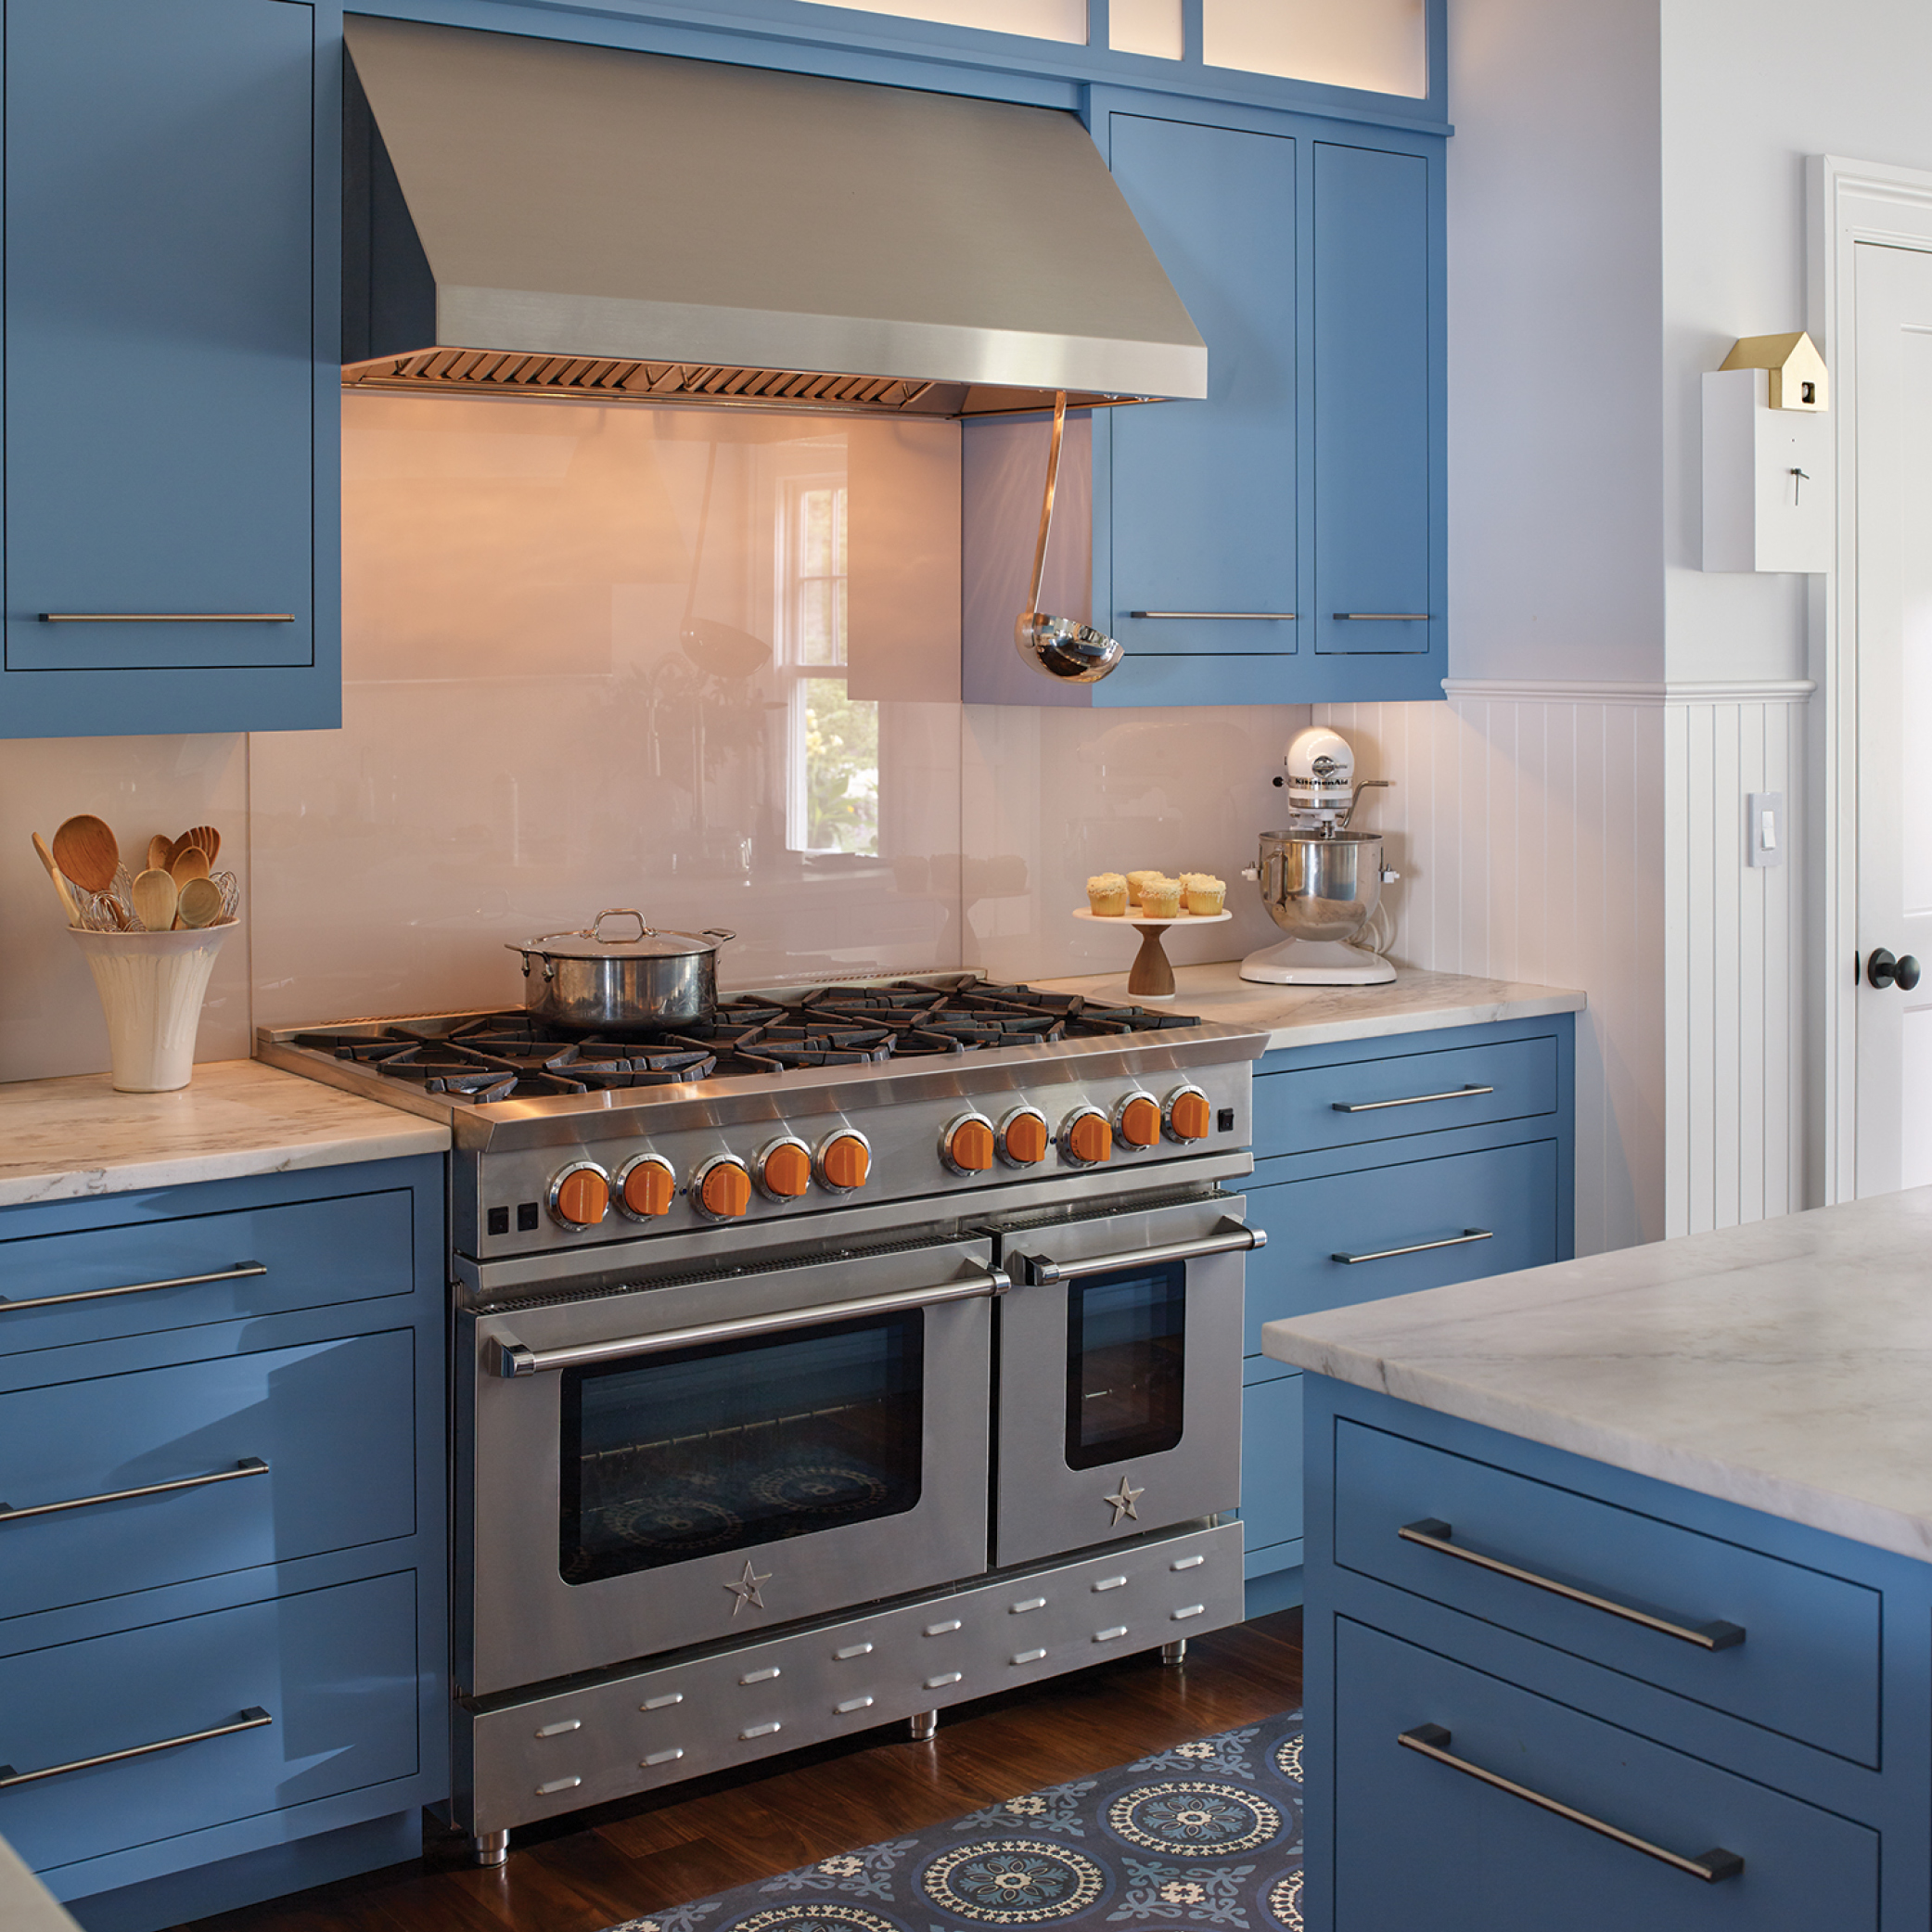 Large double oven with vent, blue cabinets, and marble countertops. Summer Haven.